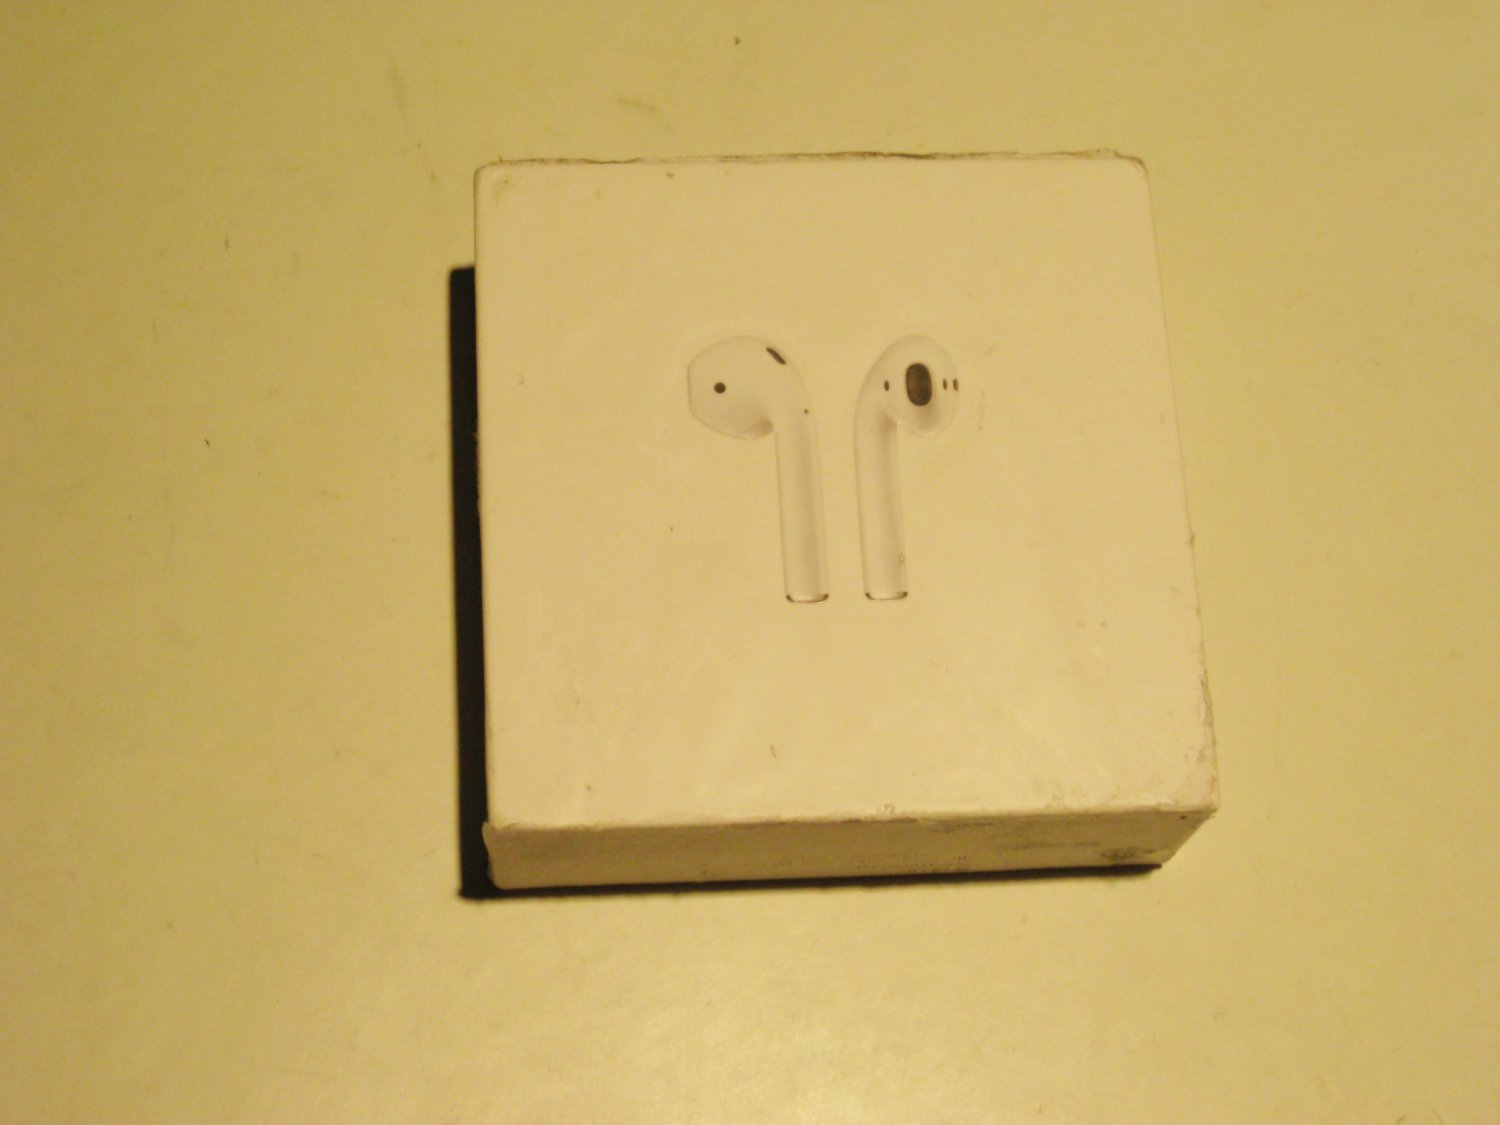 Apple Airpods 2nd Gen!!! 9.1/10